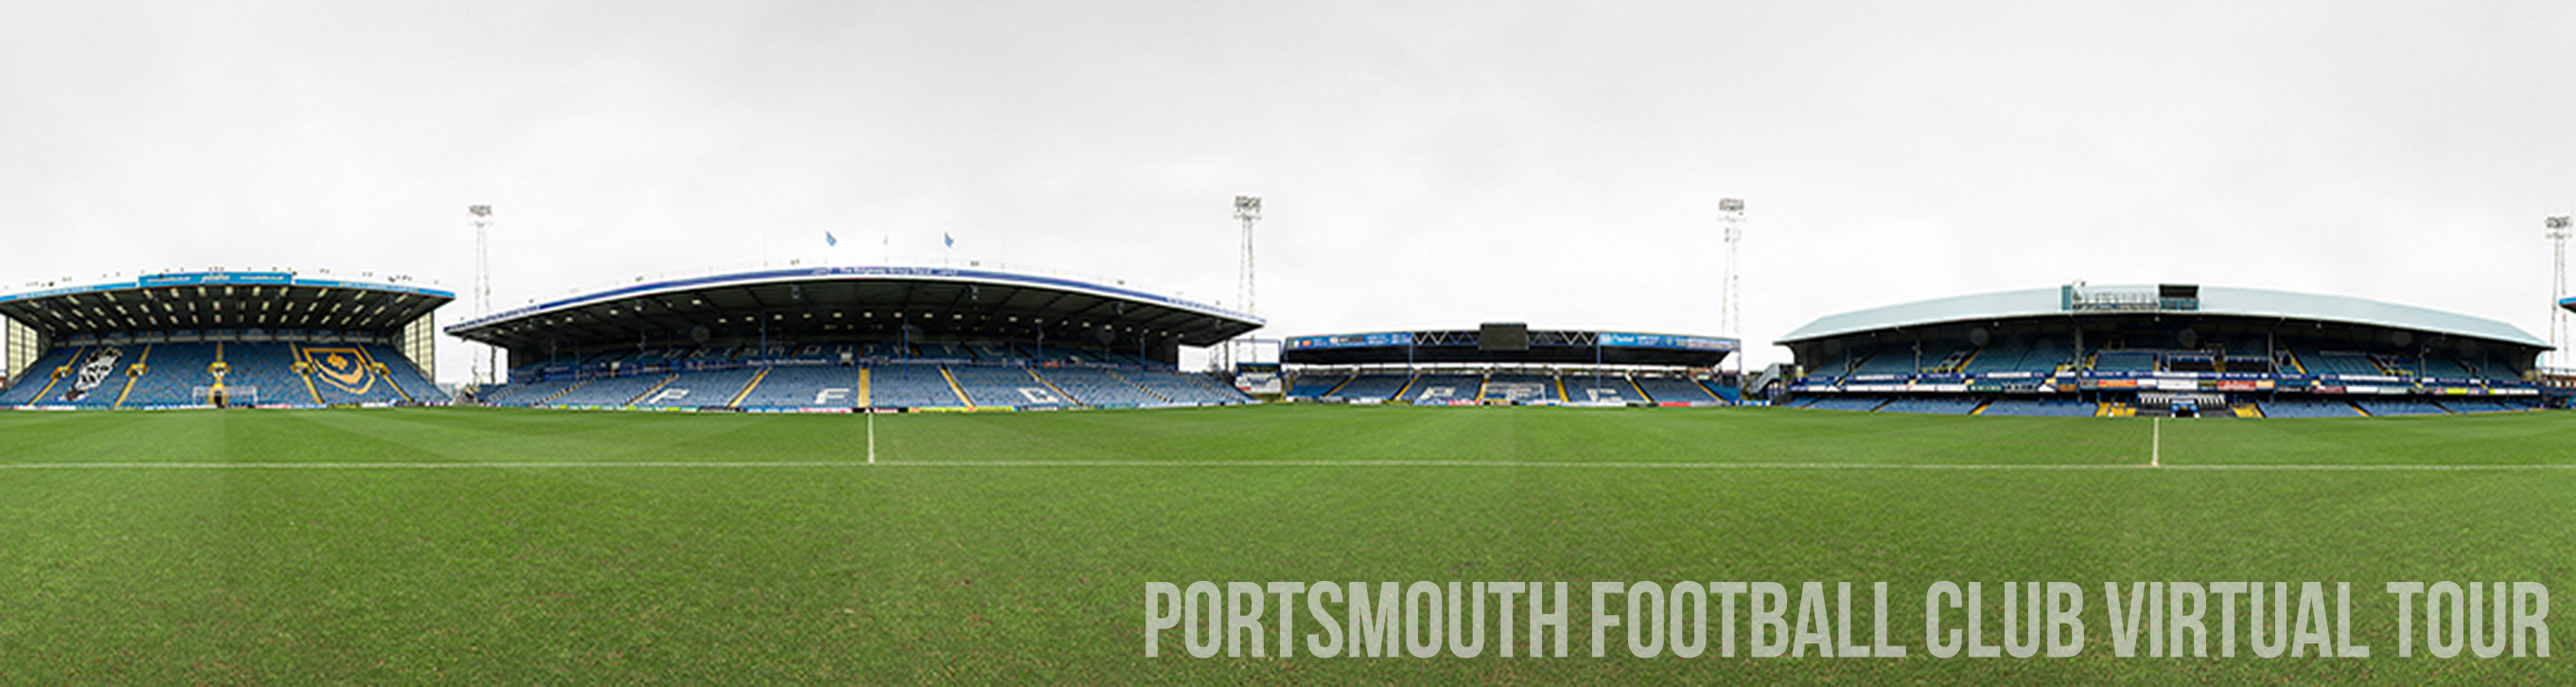 Virtual Tours Portsmouth Football Club